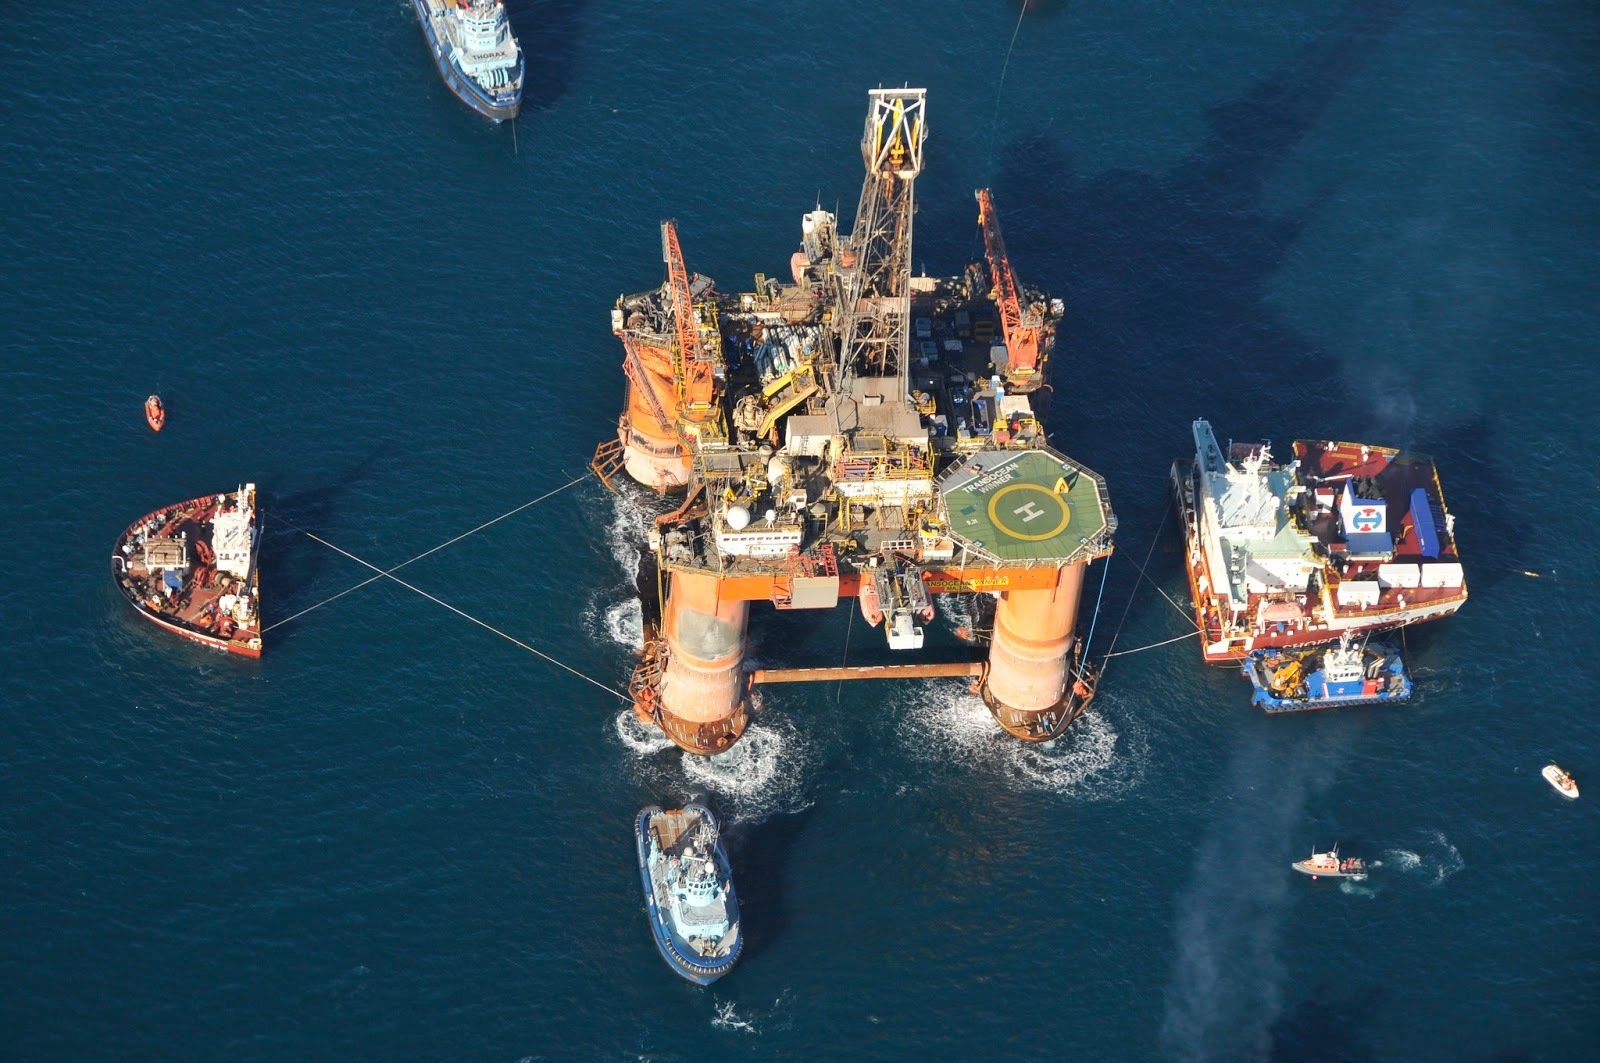 The Transocean Winner. Picture courtesy of MCA.